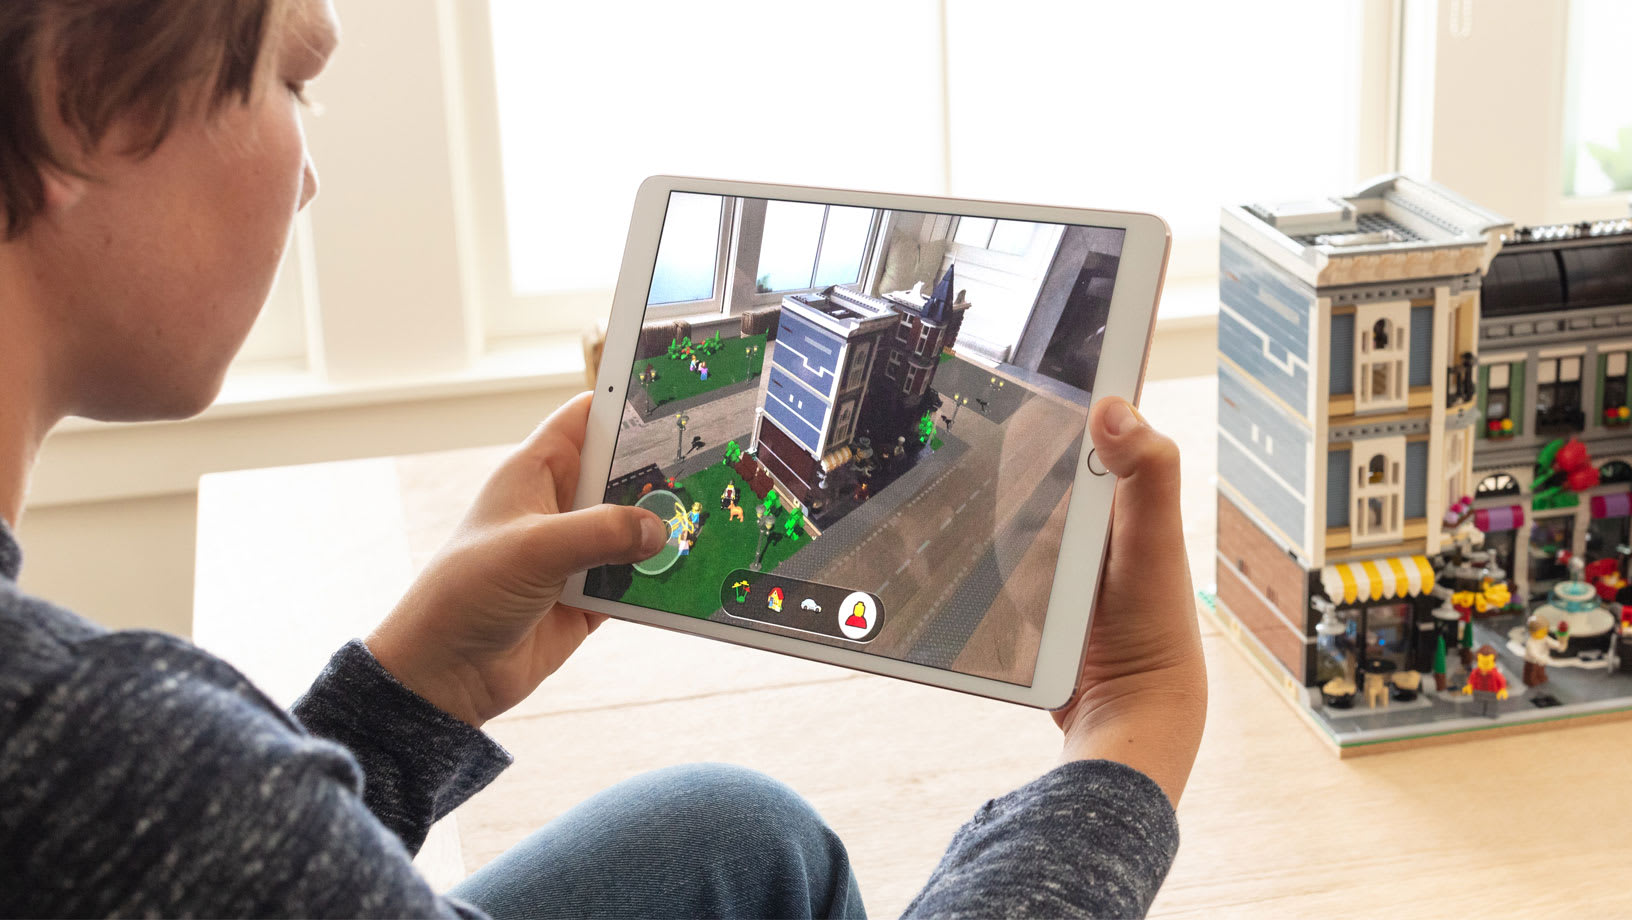 Lego is basically building AR 'Sims' for its playsets